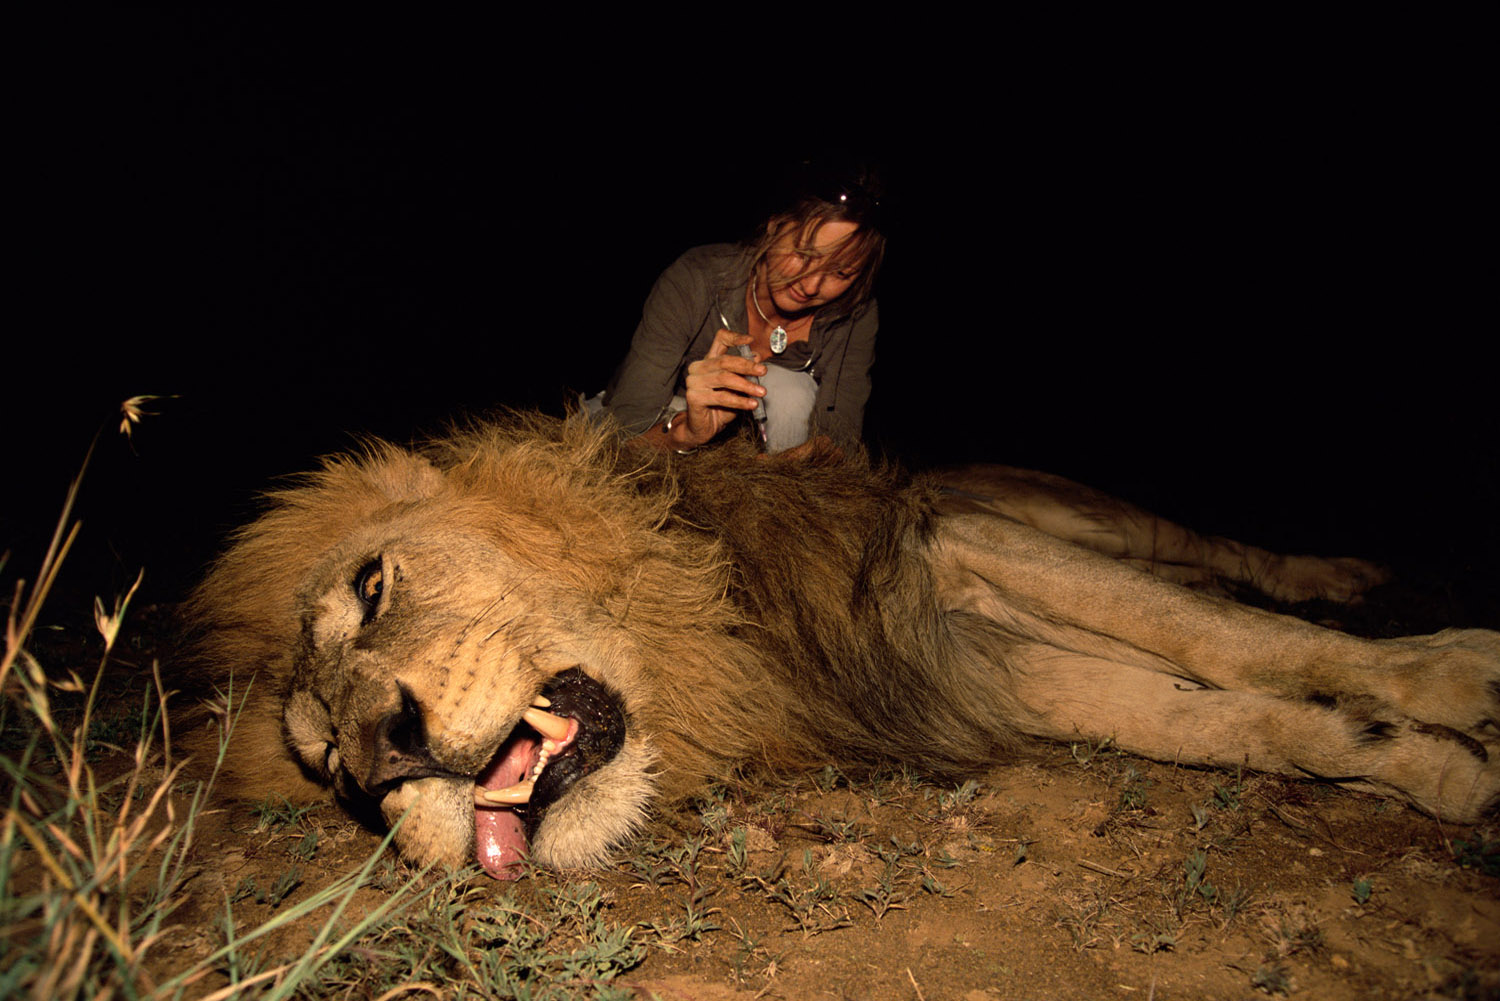 Researcher injecting tranquilised lion with antibiotics at night, Laikipia, Kenya